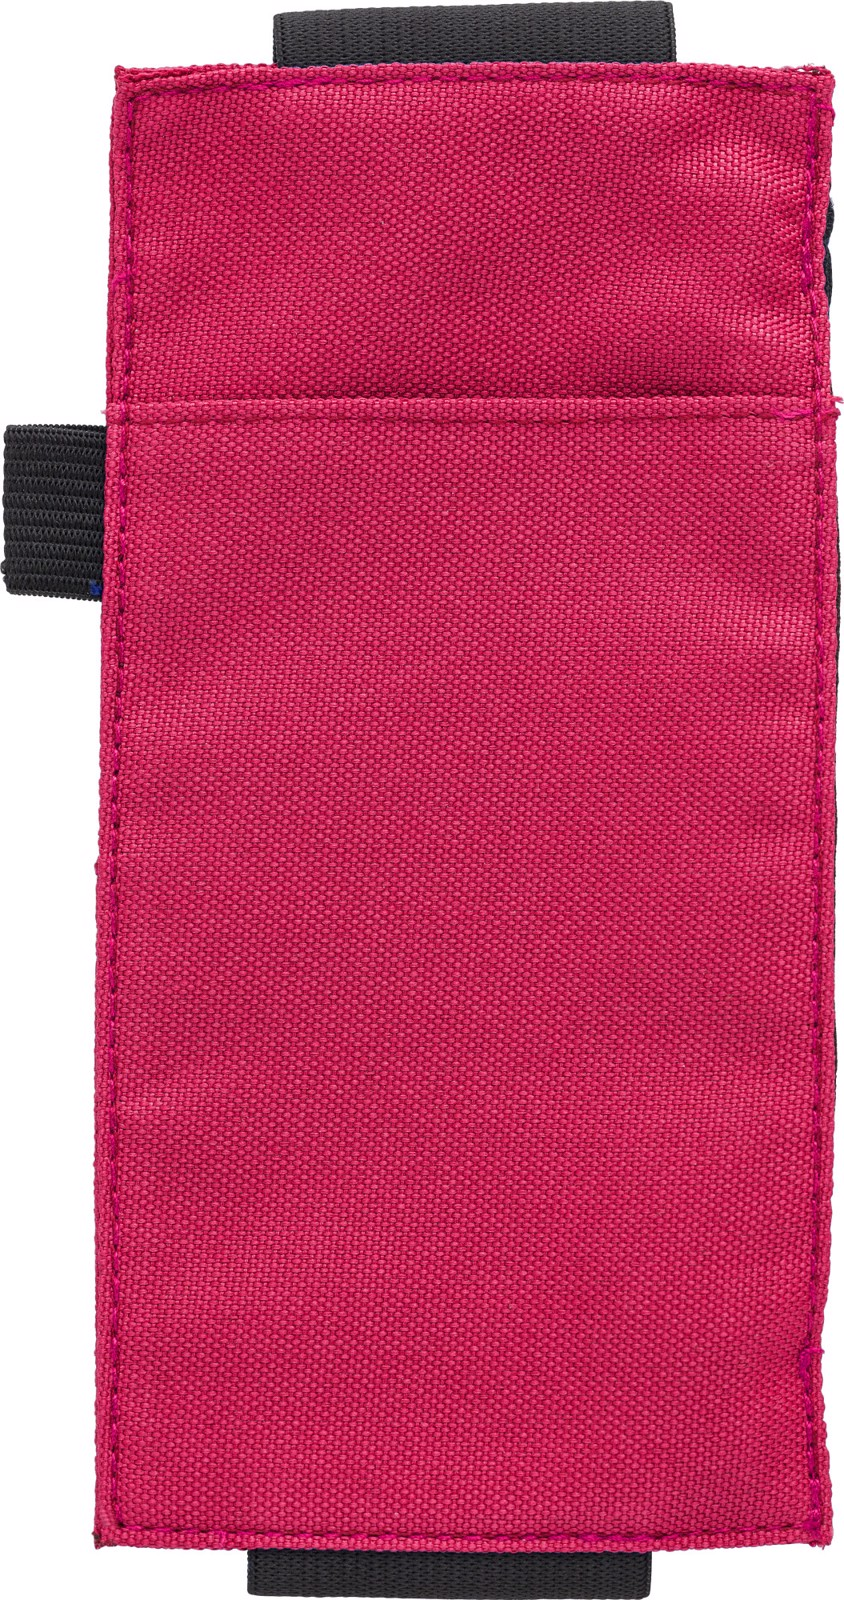 Oxford fabric (900D) notebook pouch - Red